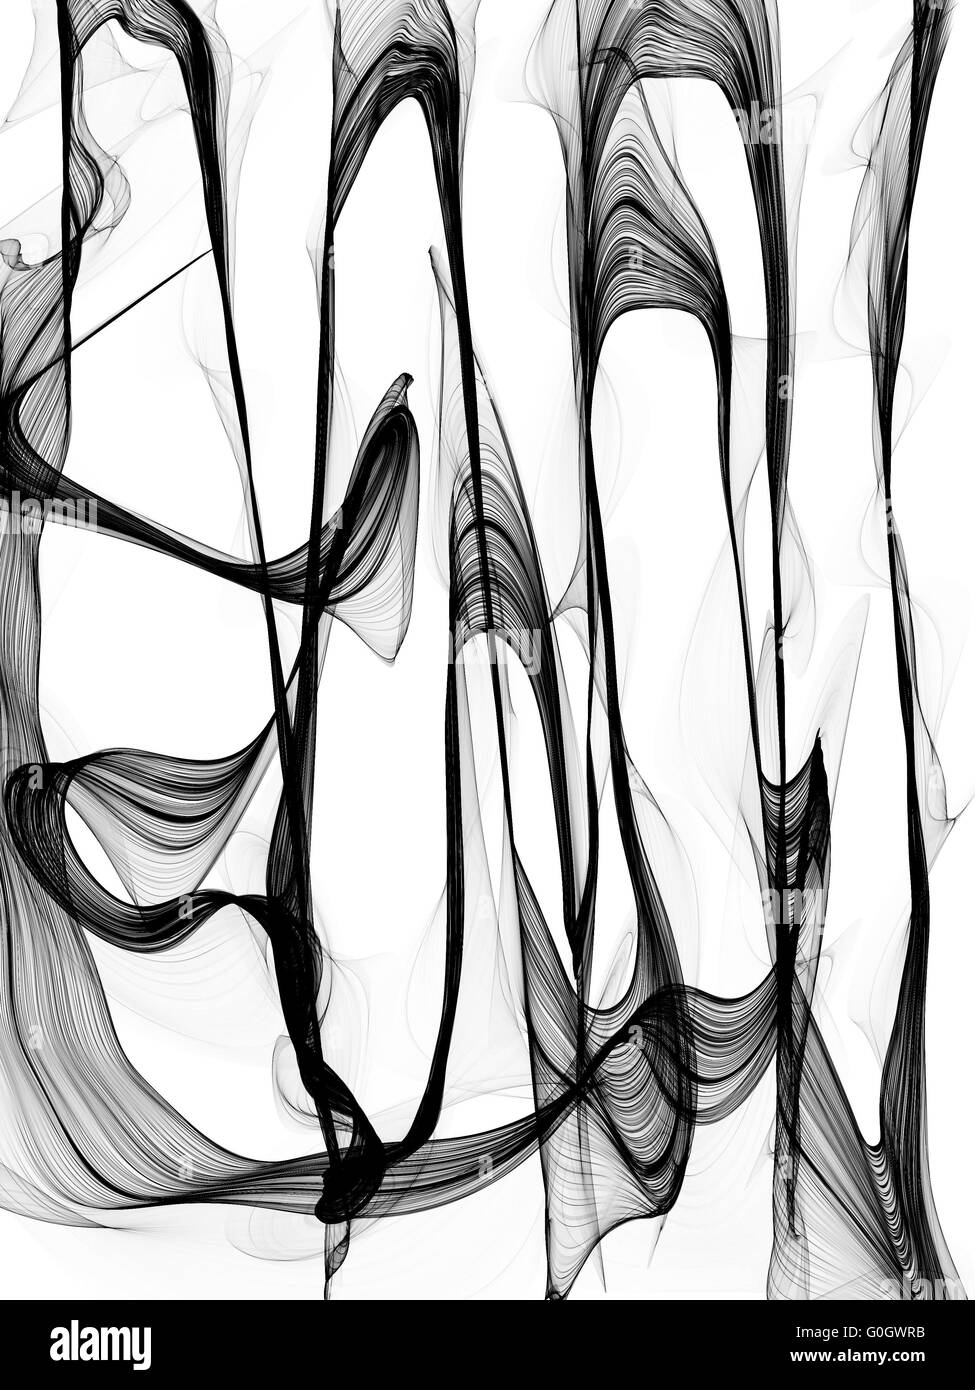 Abstract black and white background - Stock Image